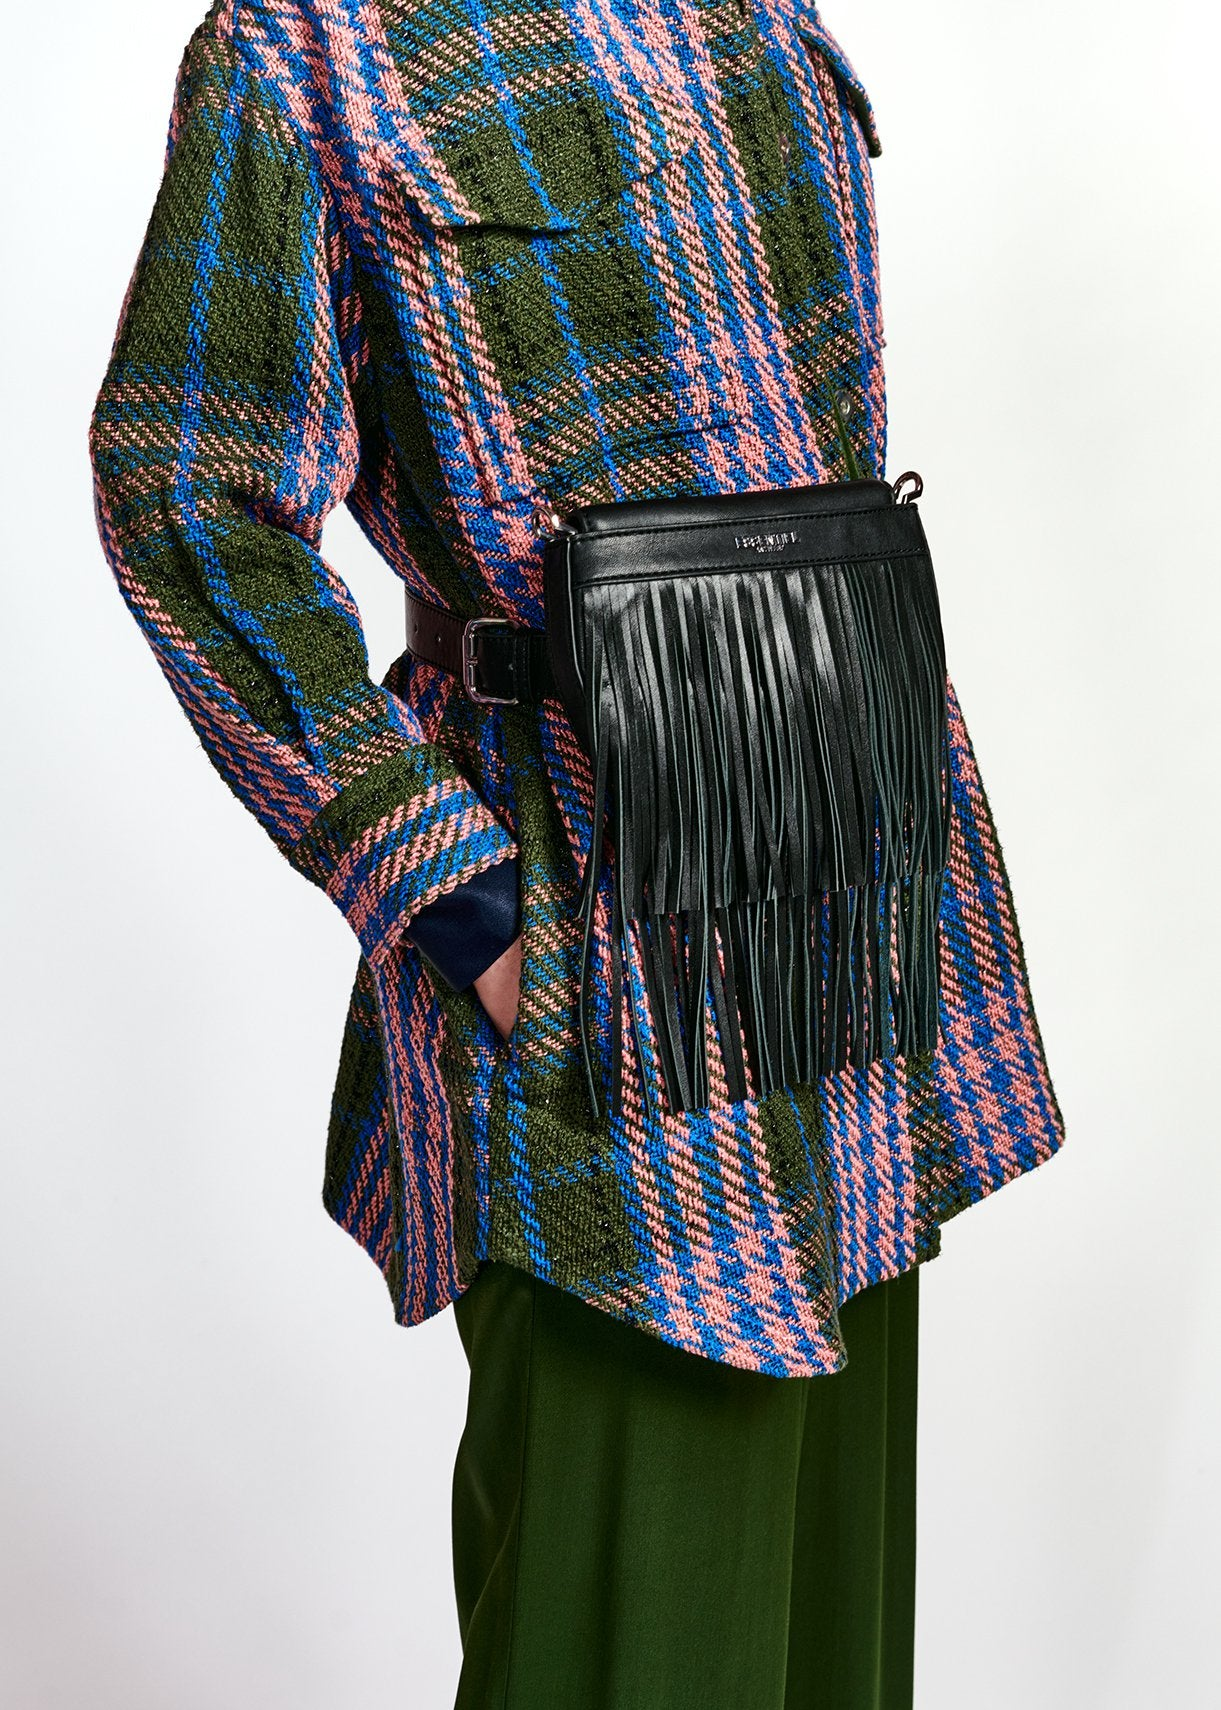 Wringo Fringe Bag - Black